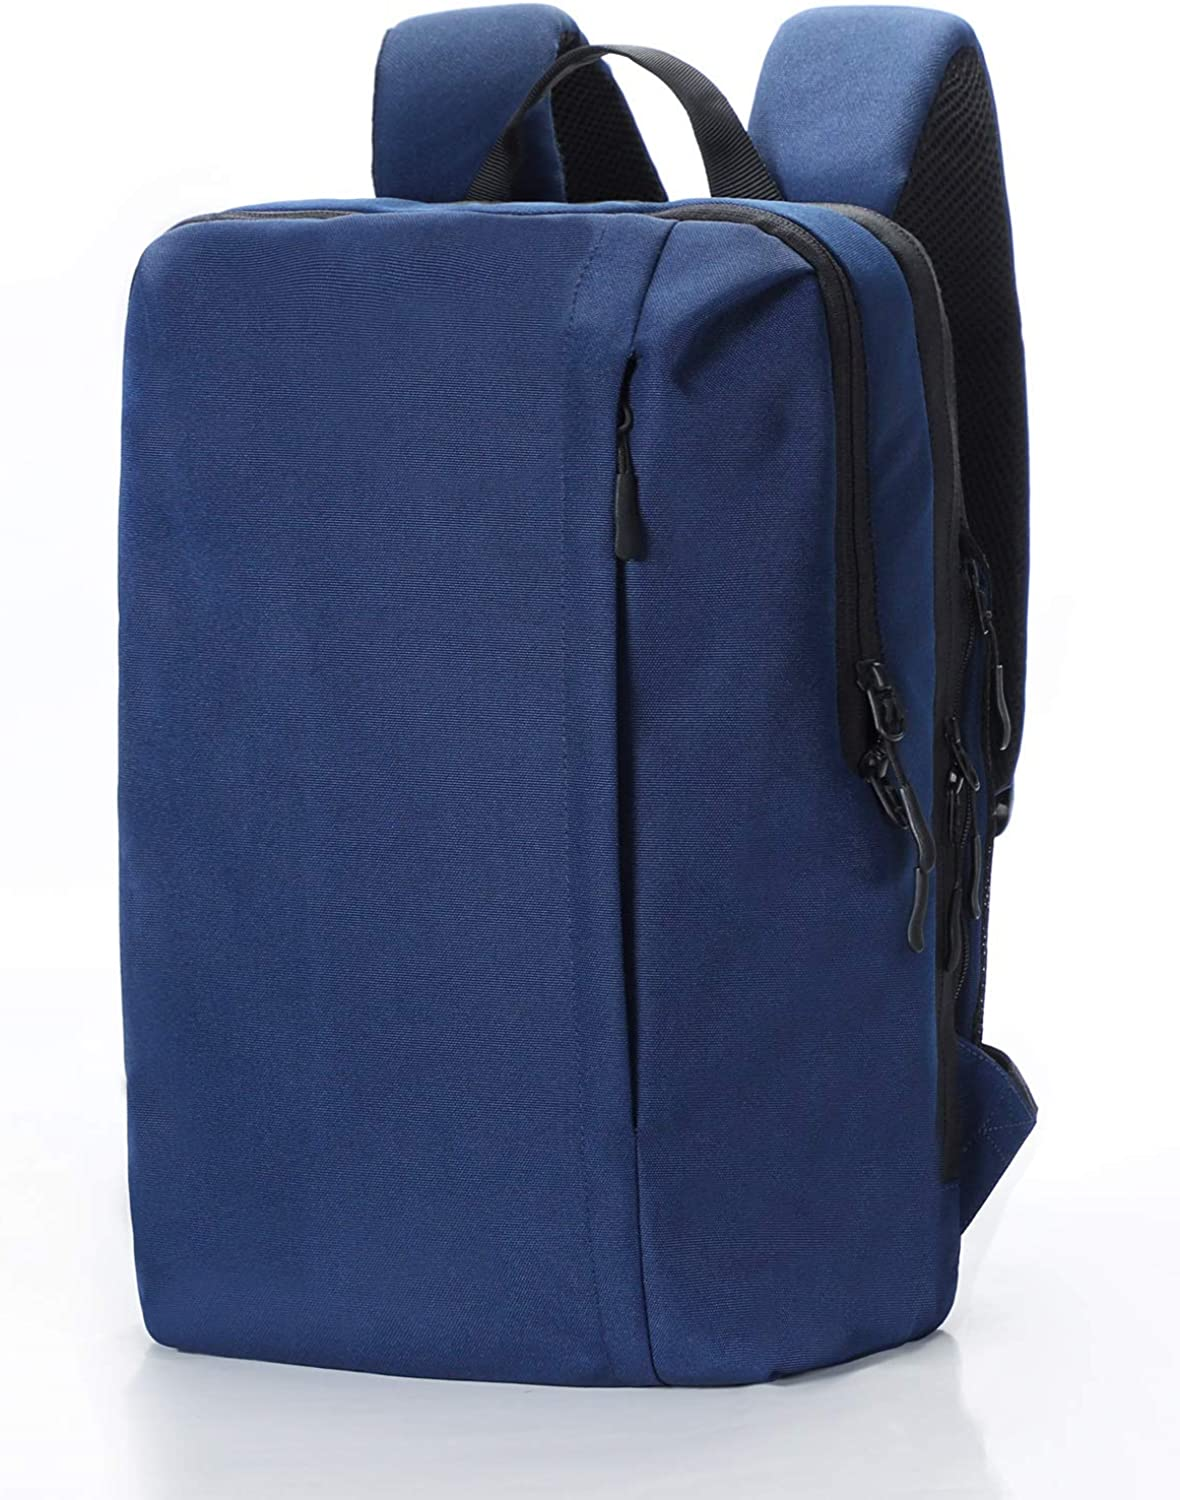 mPac Laptop Backpack, Laptop Bag for Men and Women